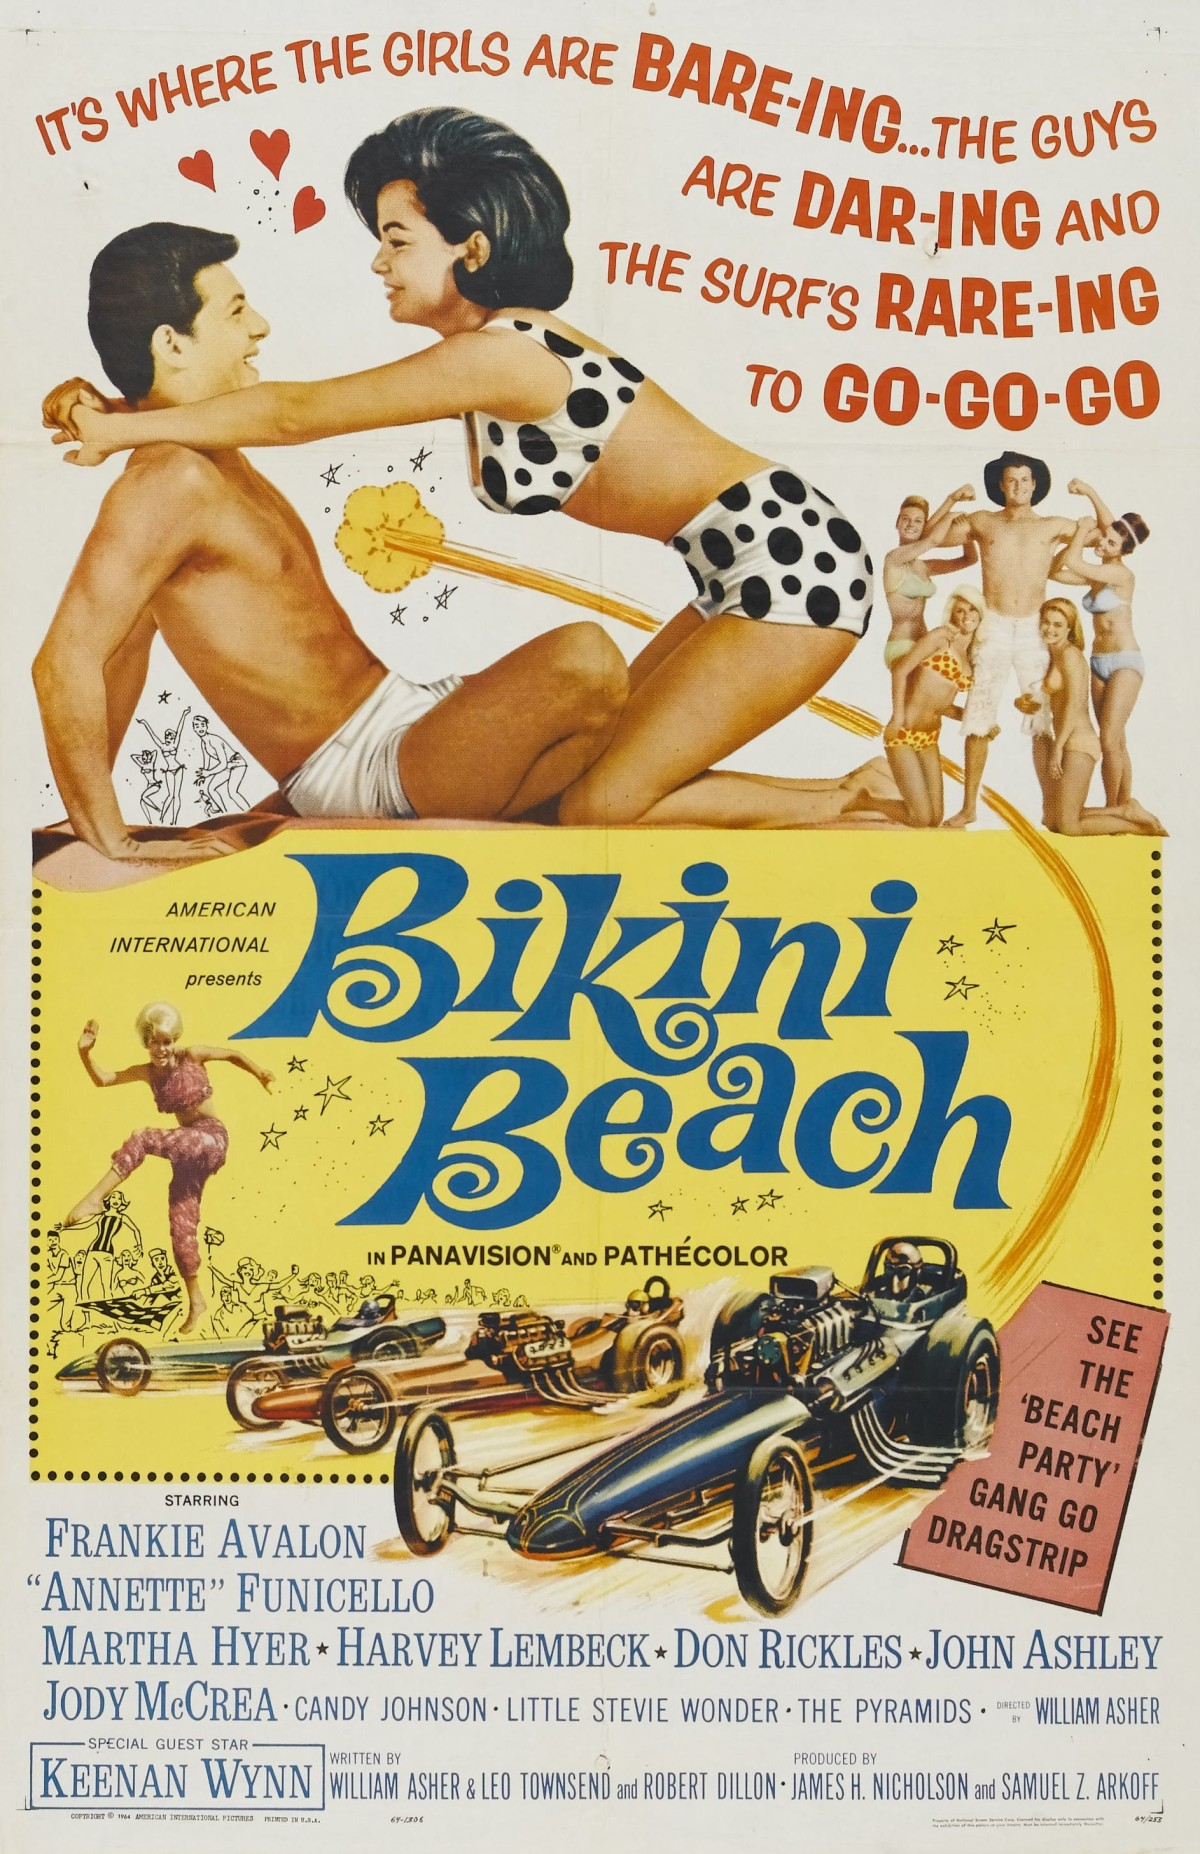 http://vciclassicfilms.files.wordpress.com/2011/04/bikini-beach-original.jpg?w=1200